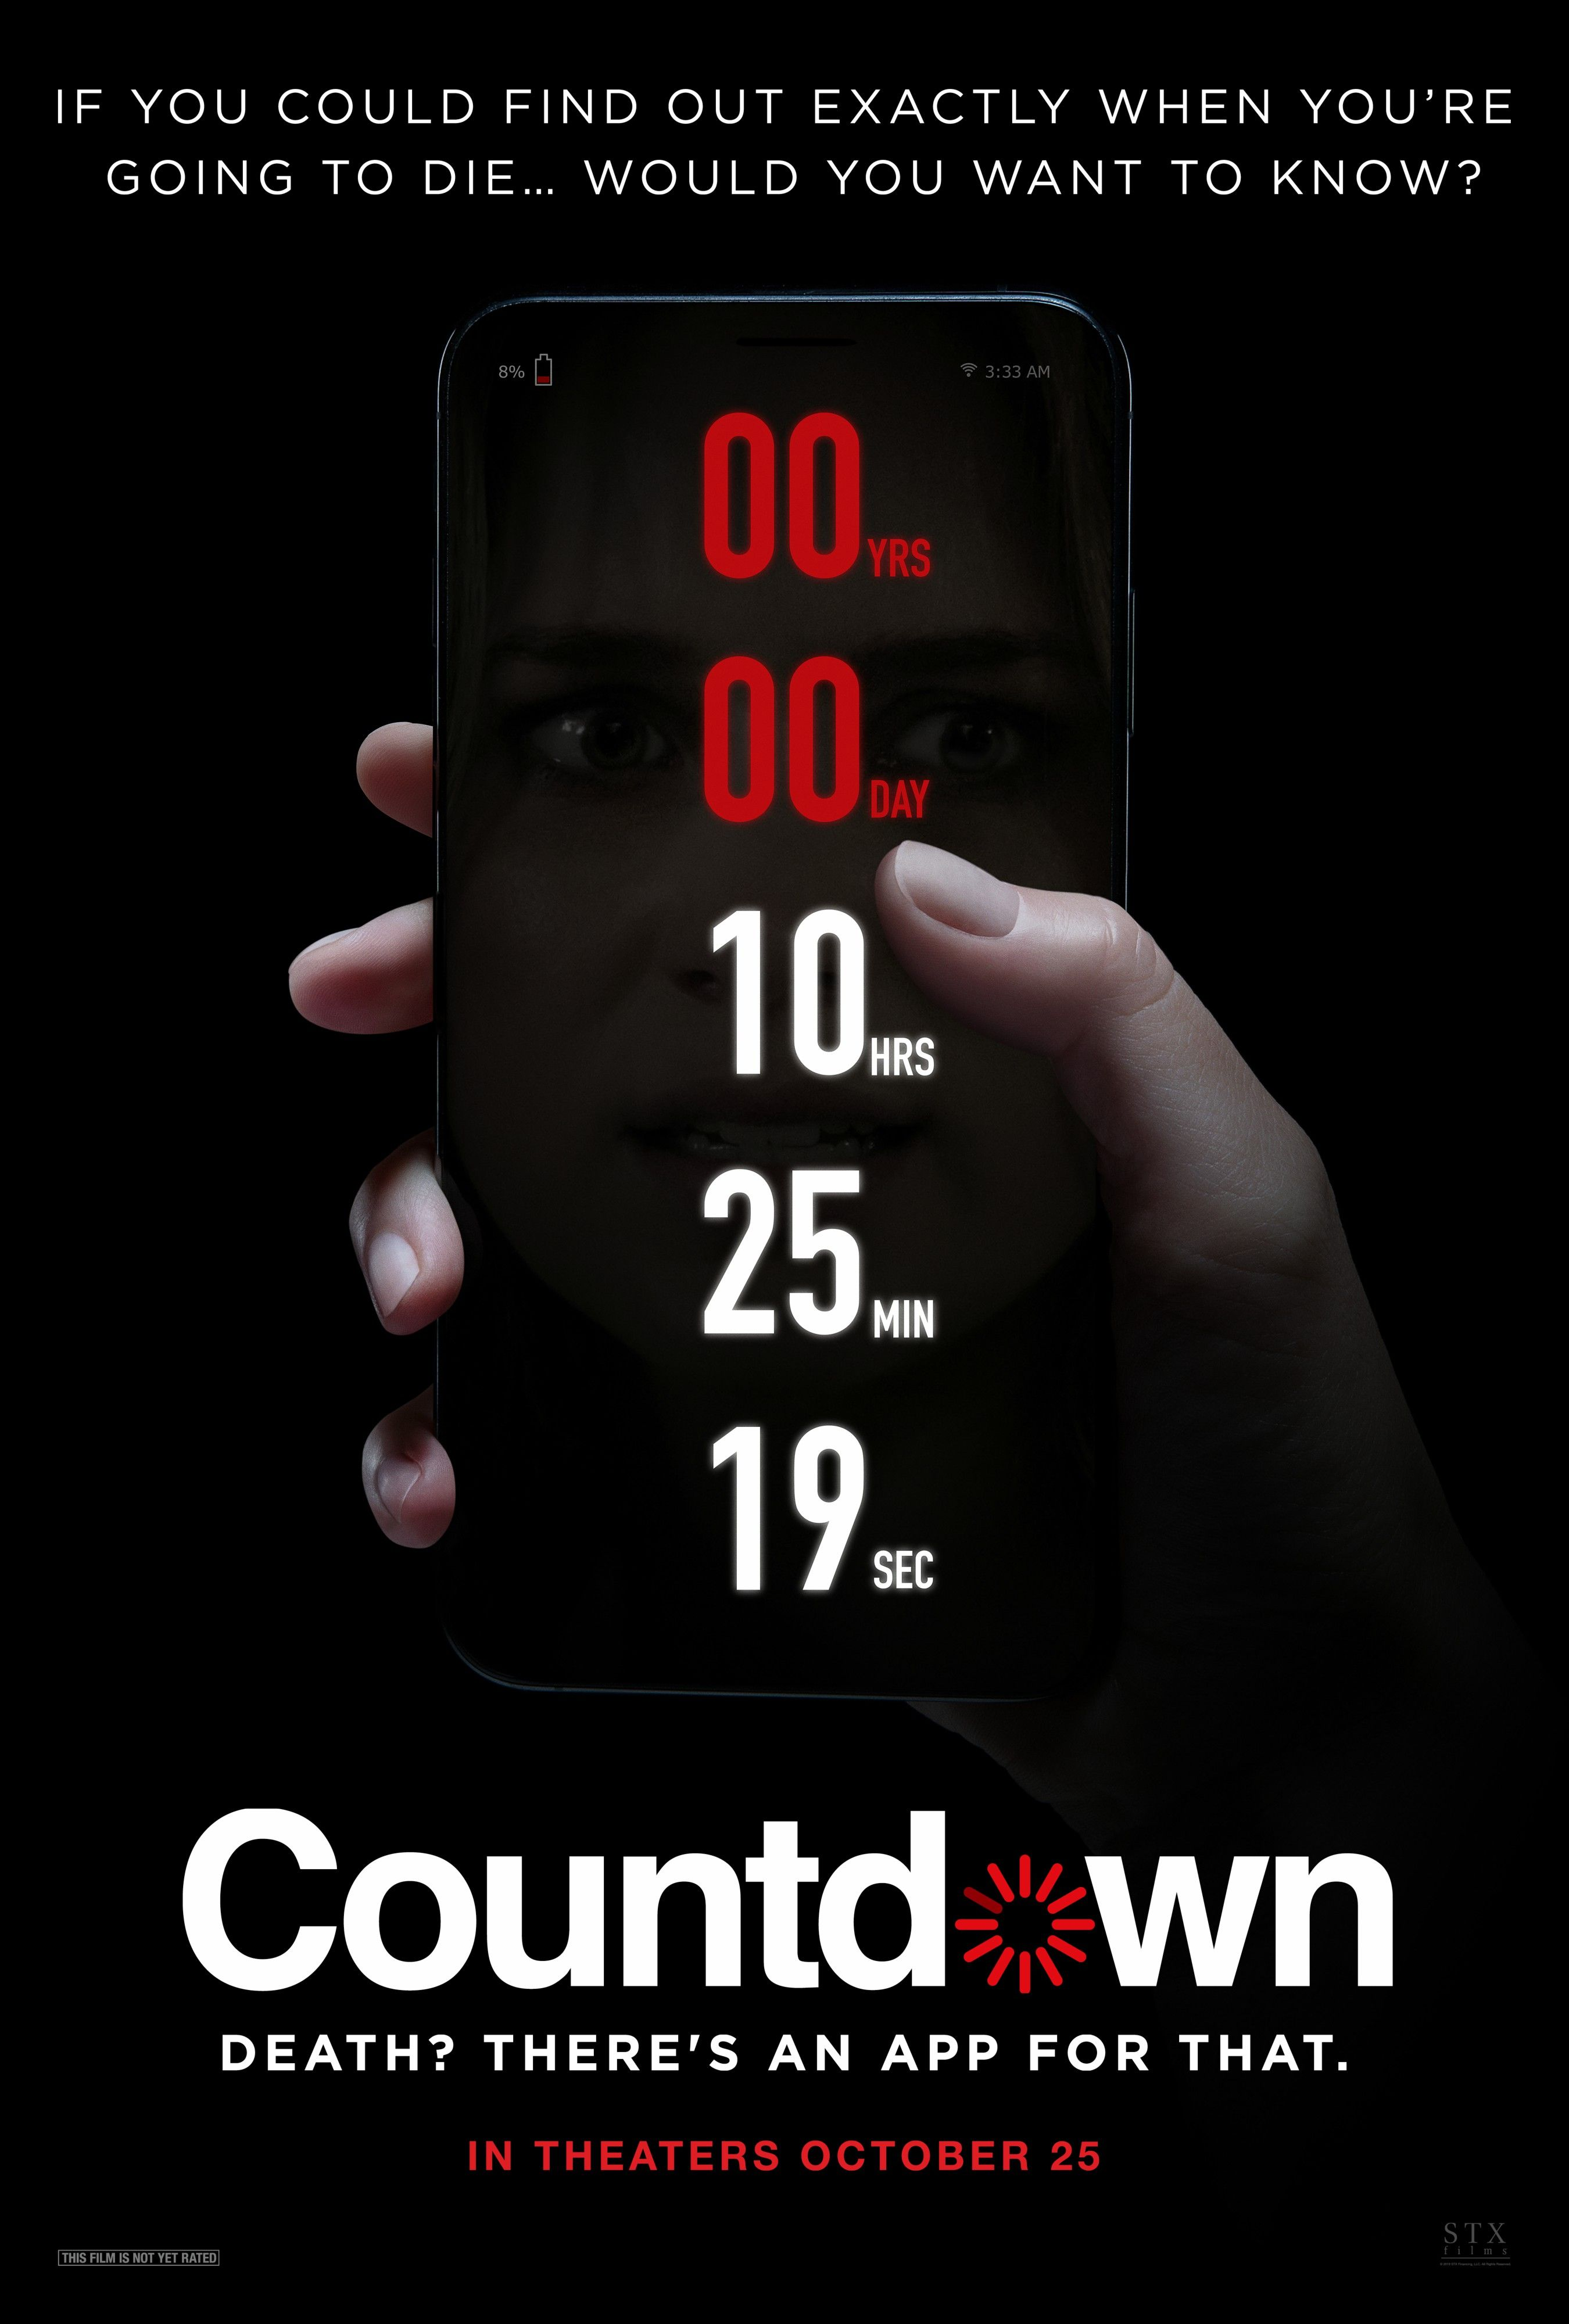 Film Countdown: Countdown Poster & Images Reveal An App That Knows When